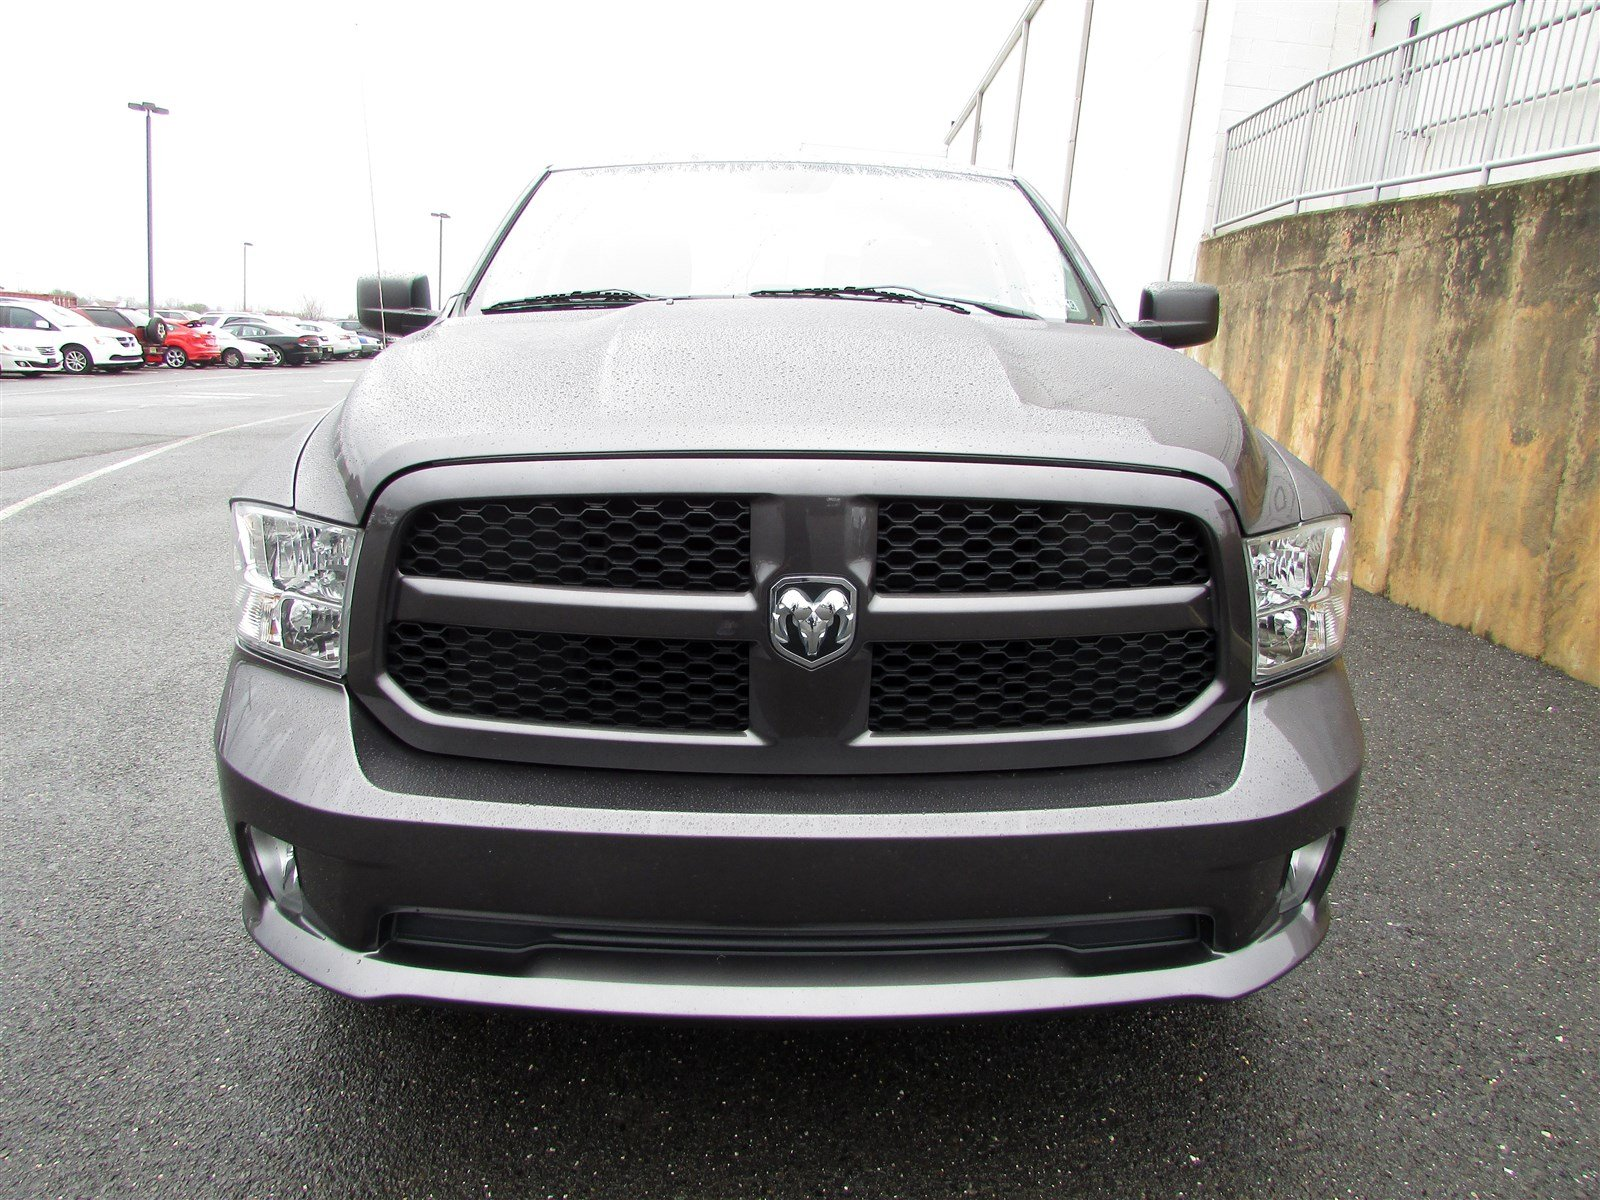 2015 Ram 1500 Quad Cab 4x4, Pickup #CJ165A - photo 3